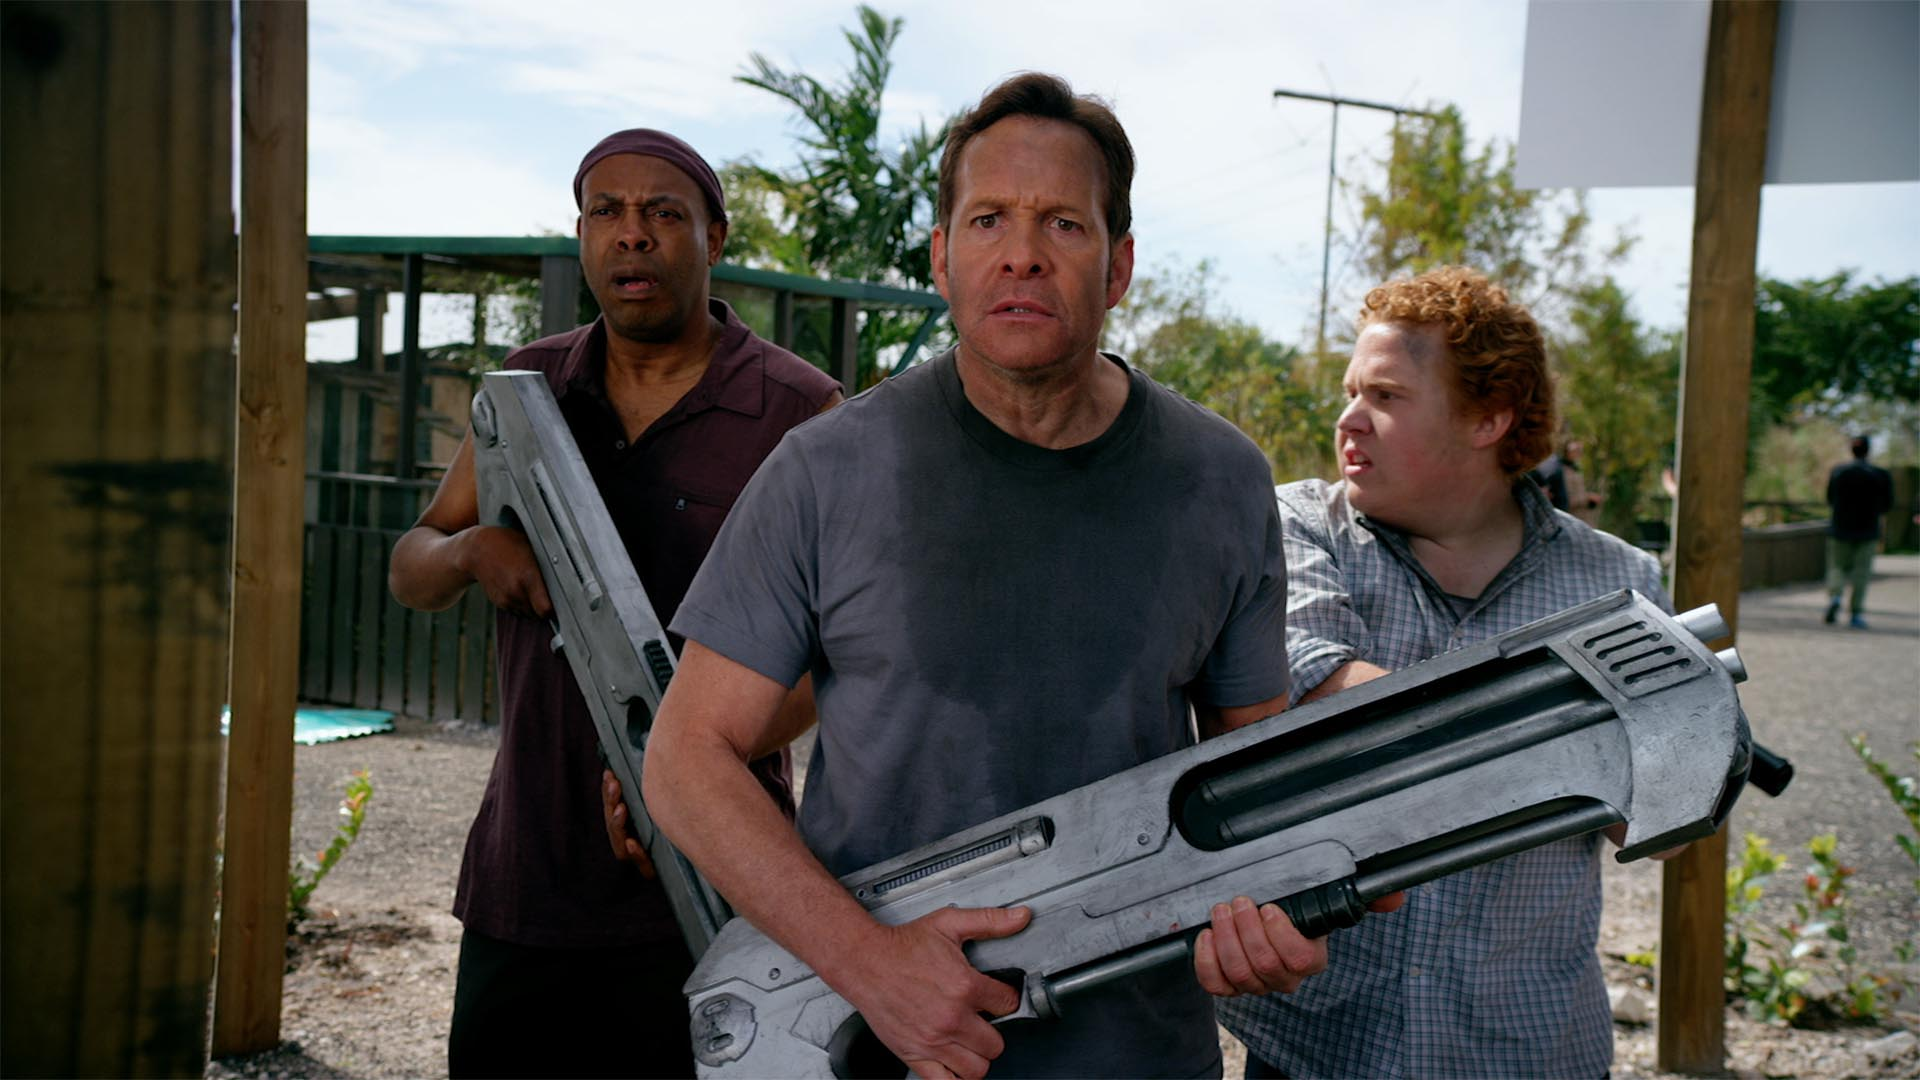 Back in action (l to r) Michael Winslow, Steve Guttenberg, Jimmy Bellinger in 2 Lava 2 Lantula (2016)